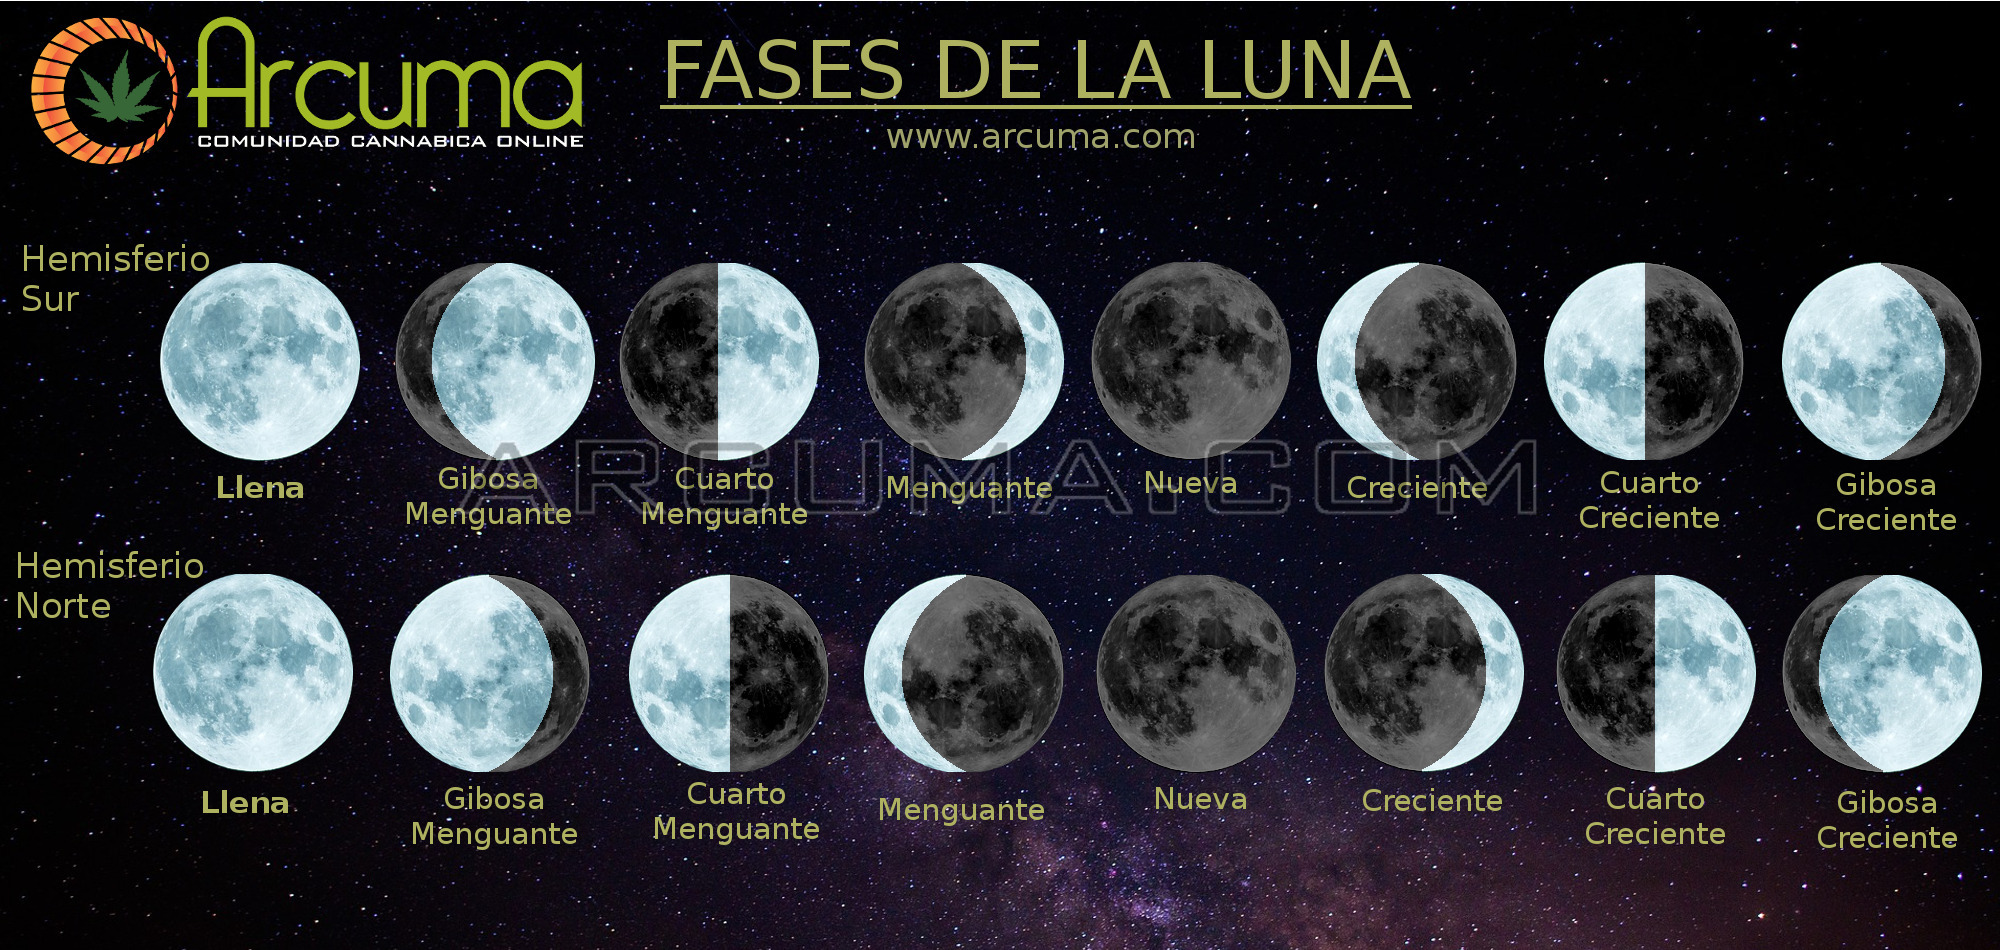 Calendario Lunar Cannábico 2019 - Blog Arcuma